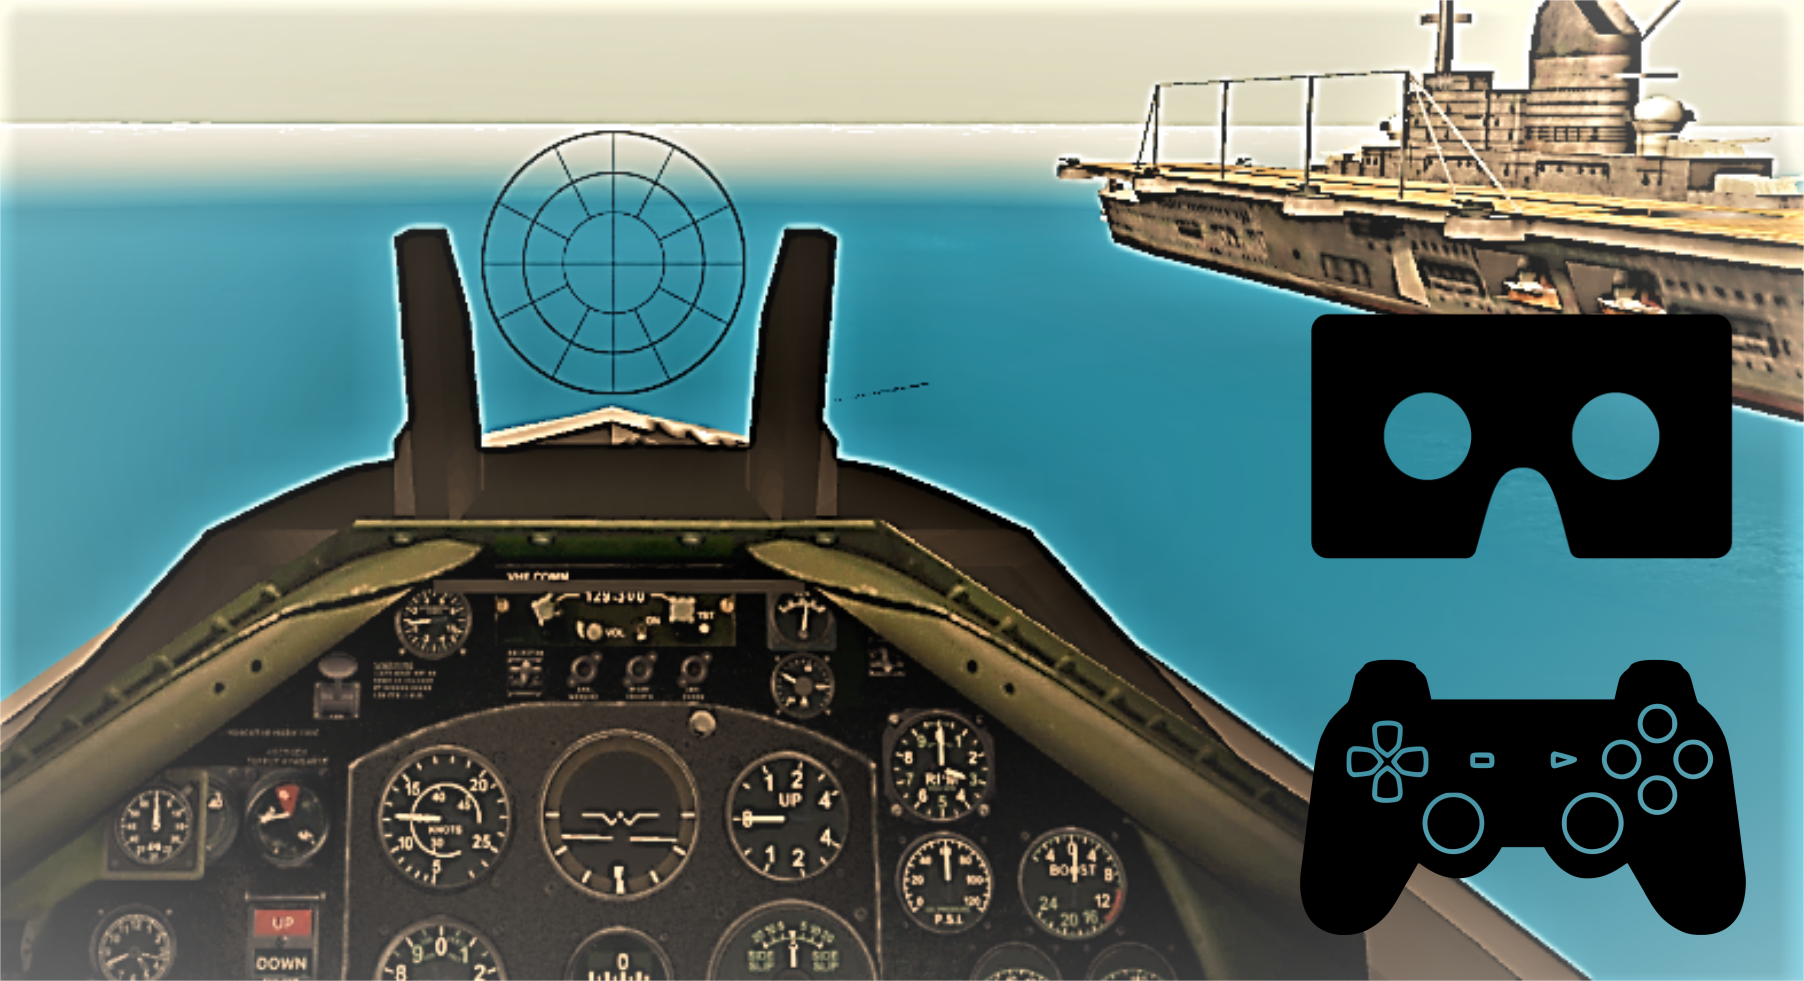 Modern Aircraft Strike VR GamePad